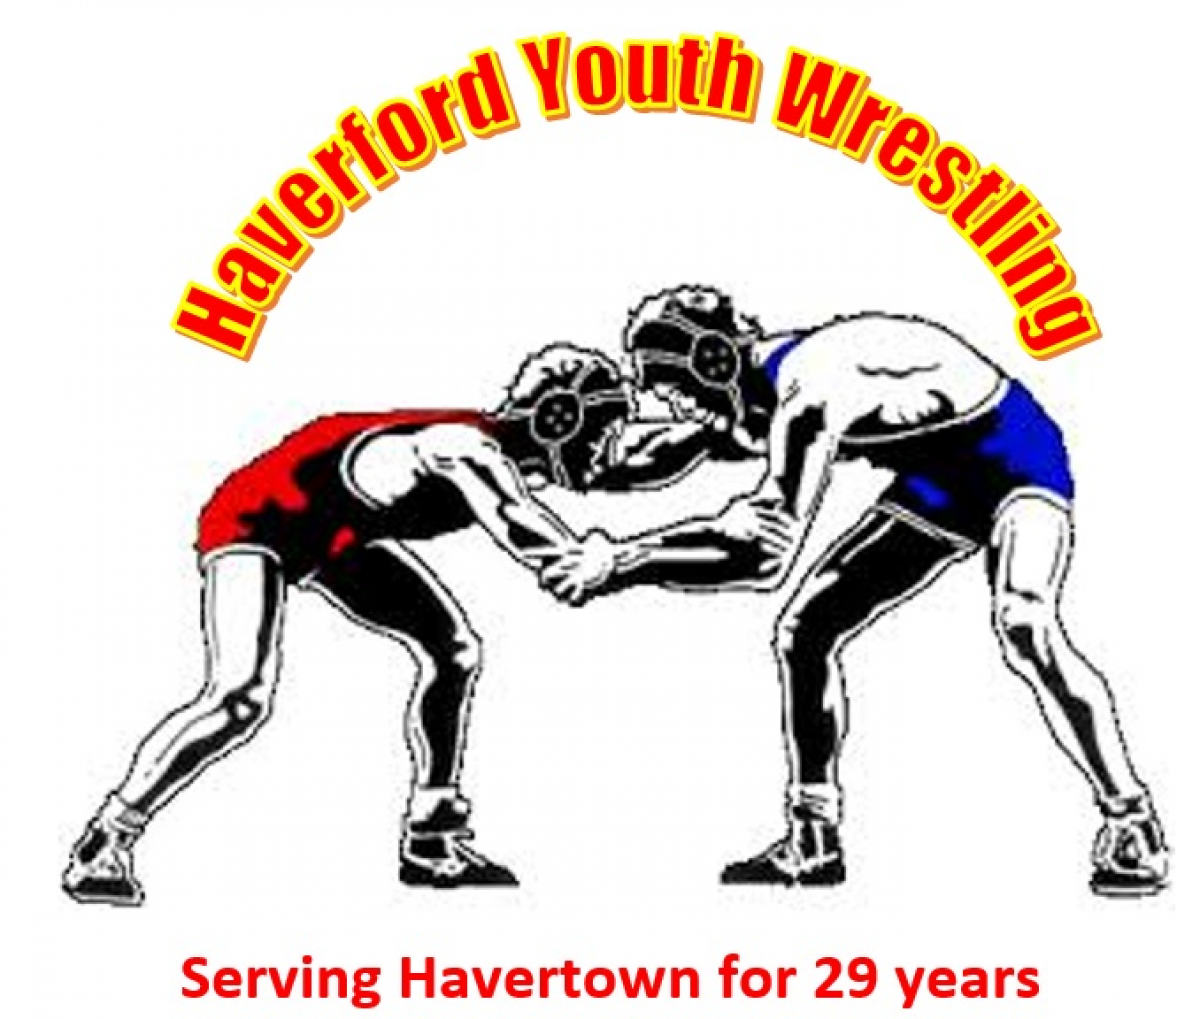 Haverford Youth Wrestling